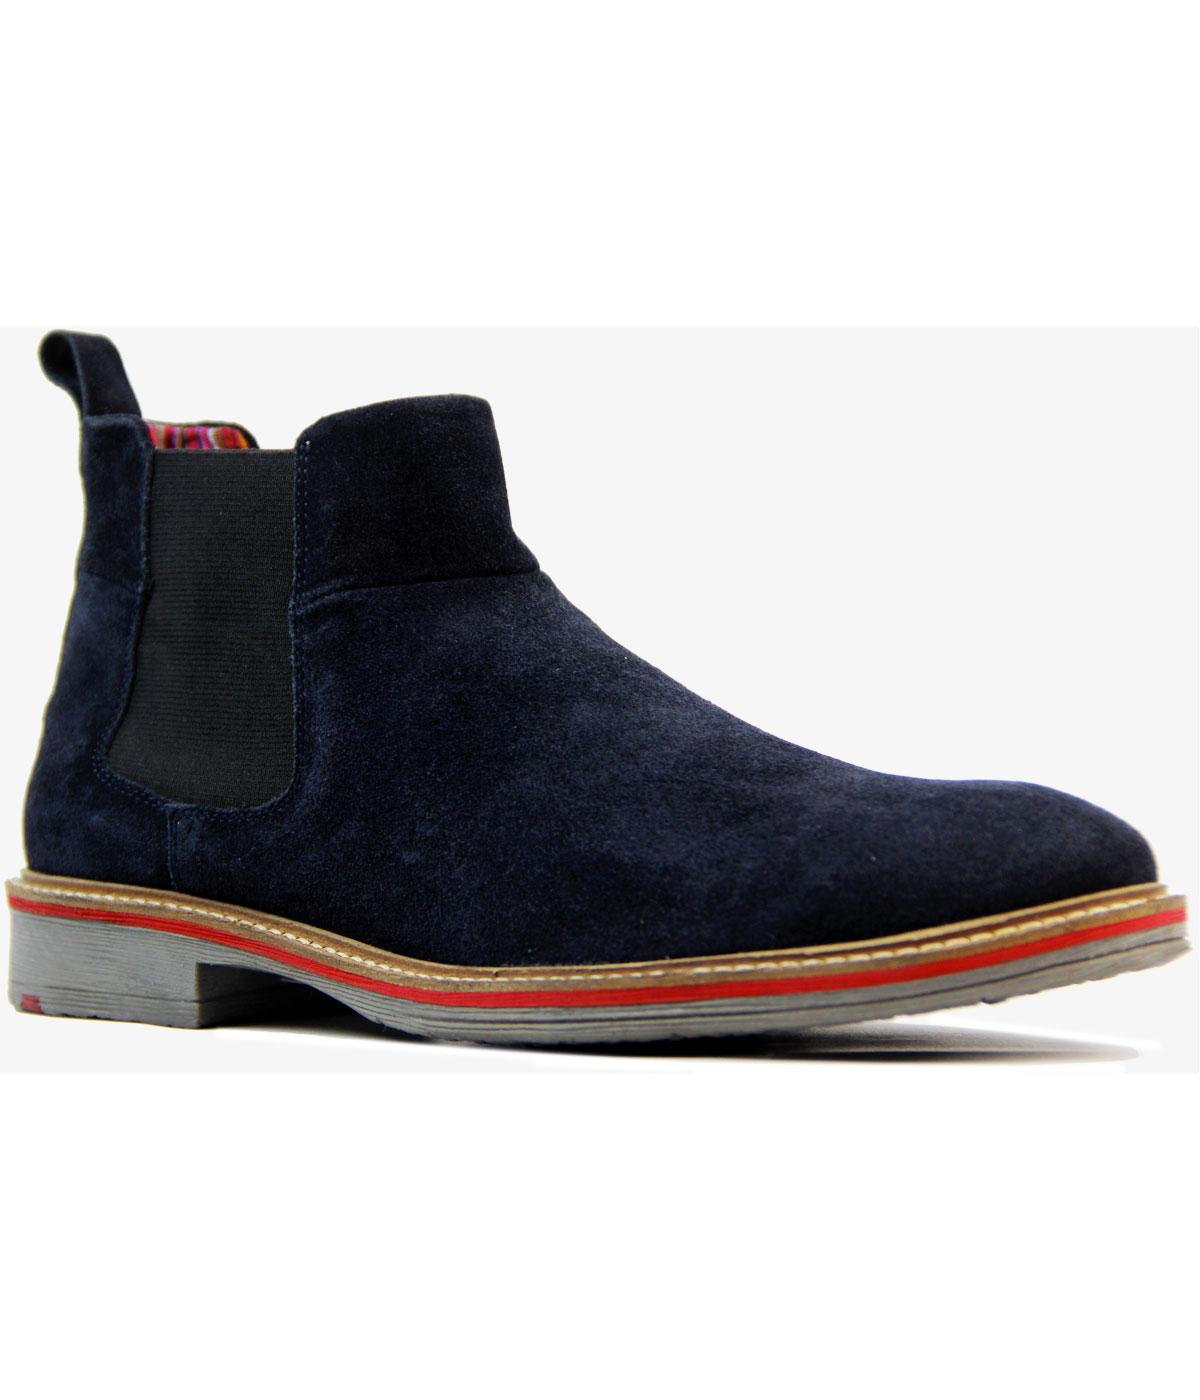 Retro 1960s Mod Suede Tipped Colour Chelsea Boots